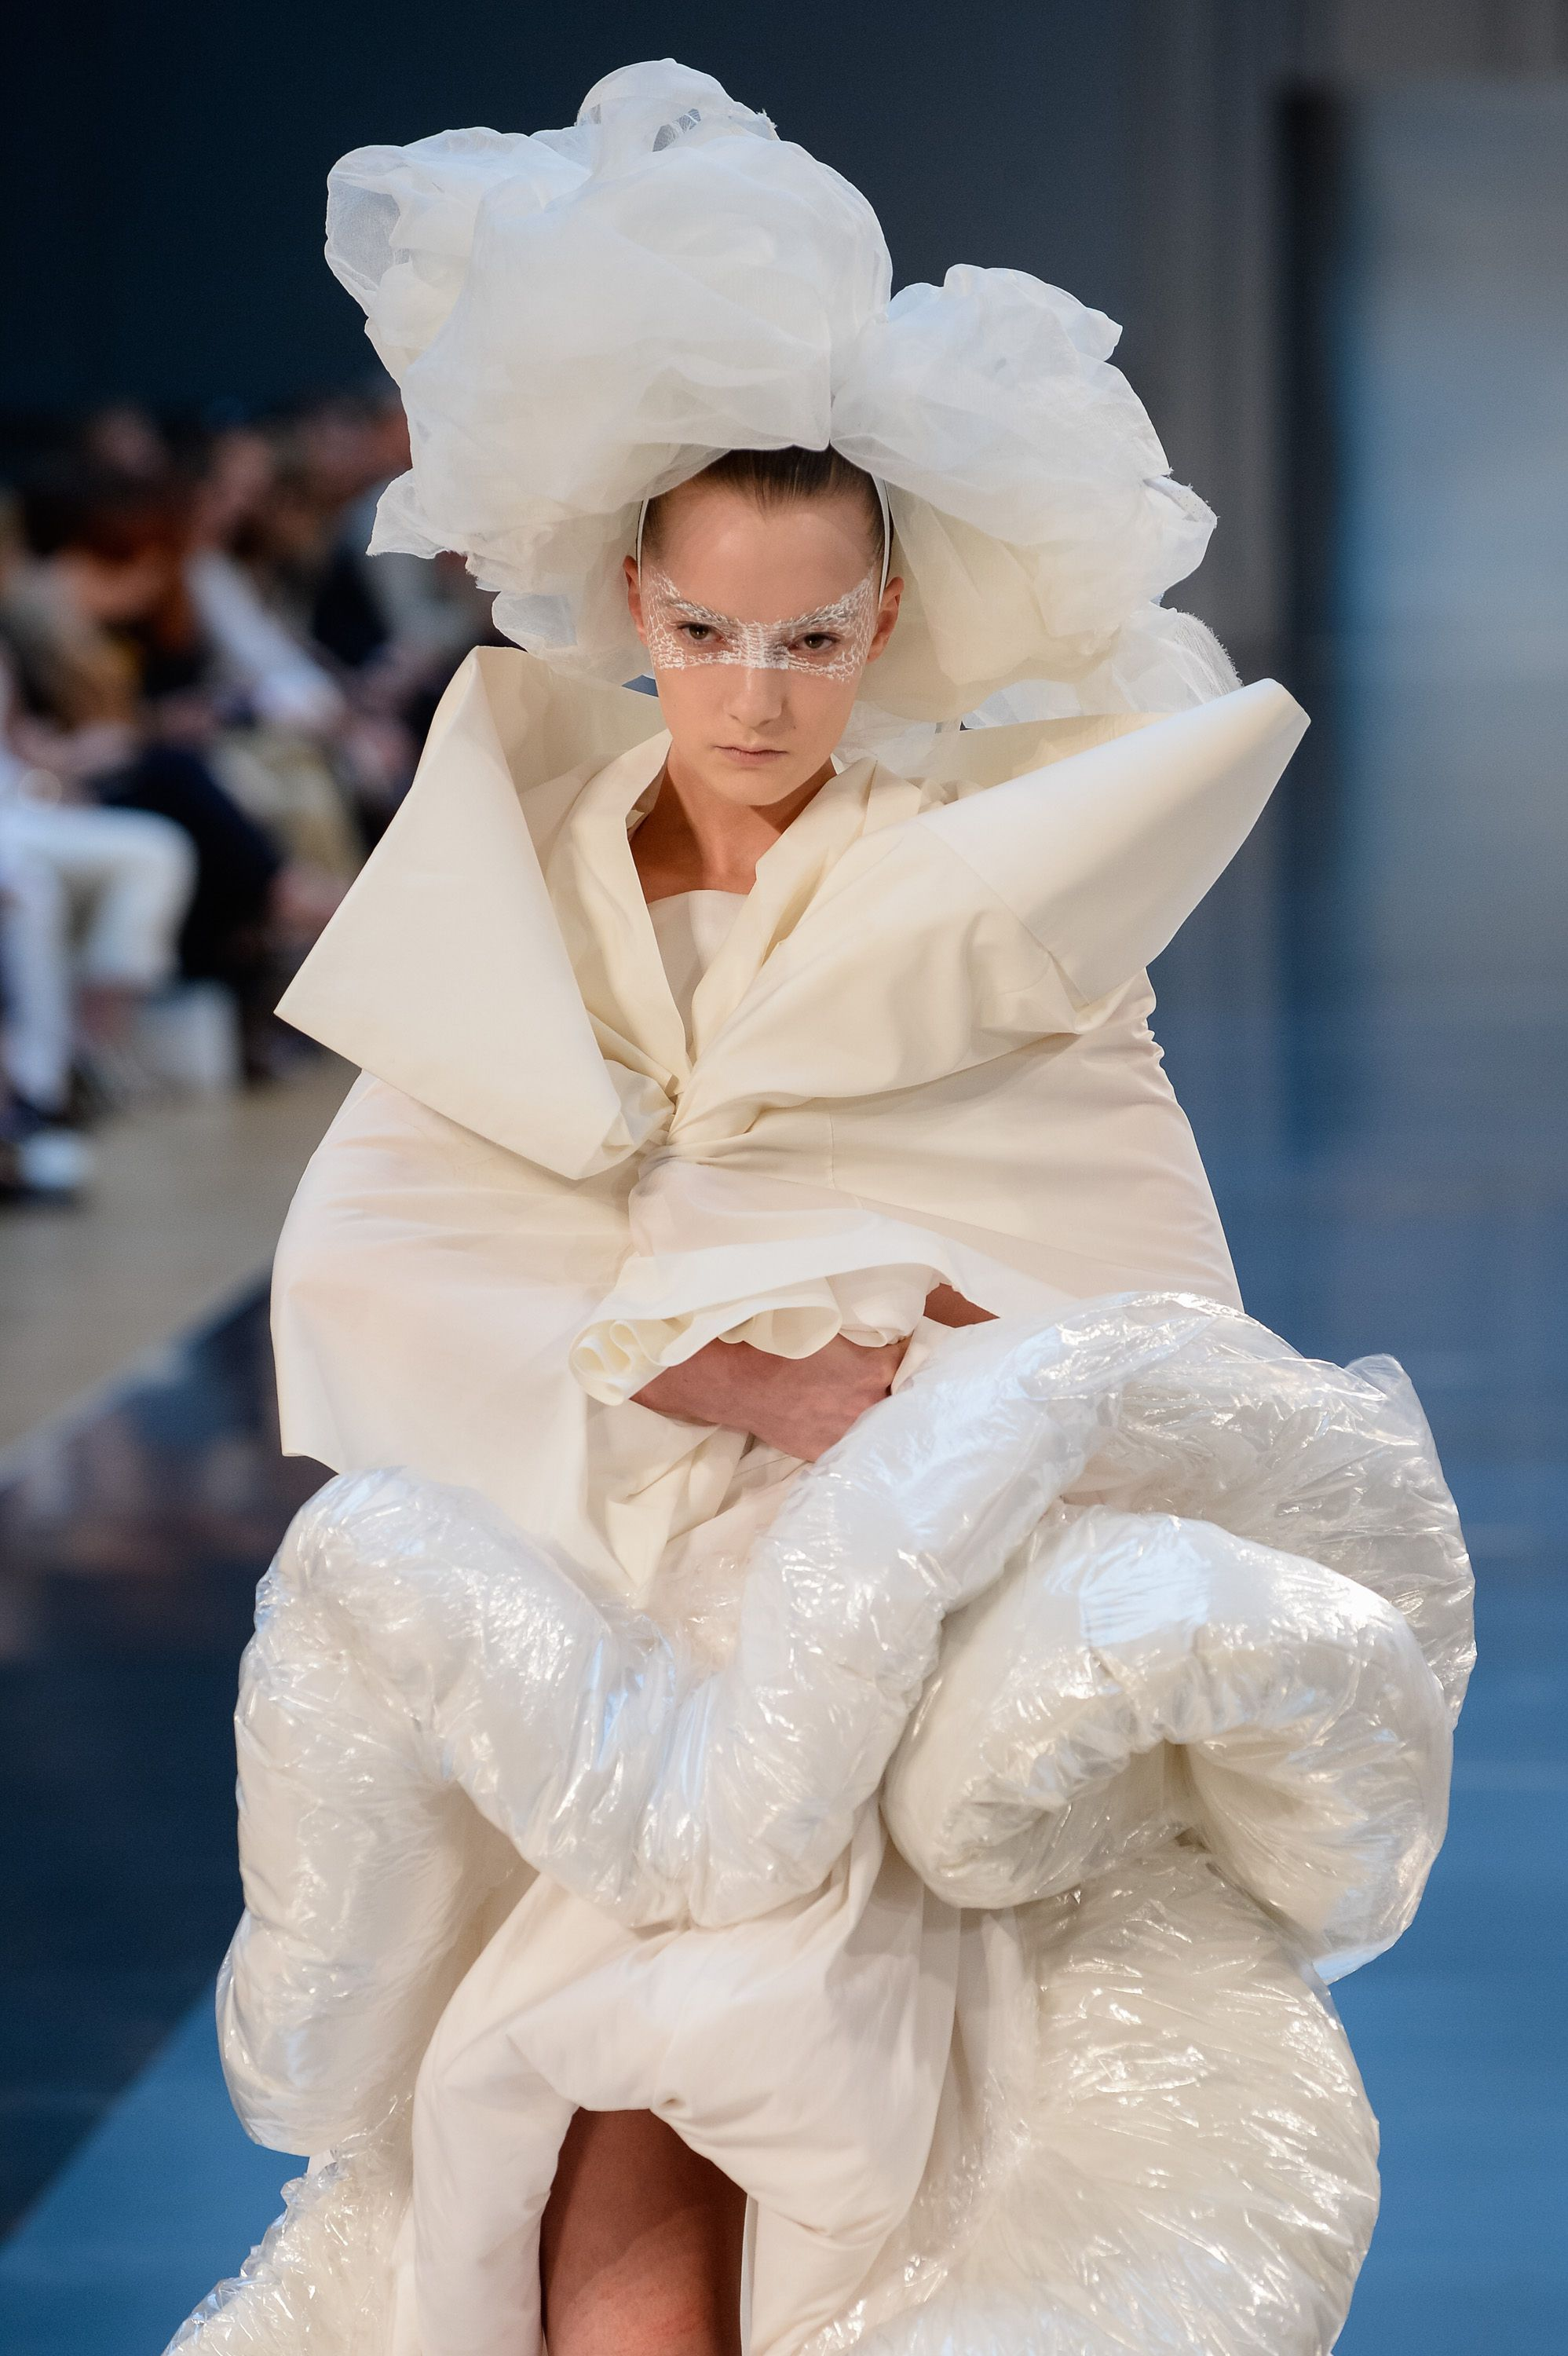 A model walks the runway during the Maison Margiela show as part of Paris Fashion Week Haute Couture Fall/Winter 2015/2016 on July 8, 2015 in Paris, France.